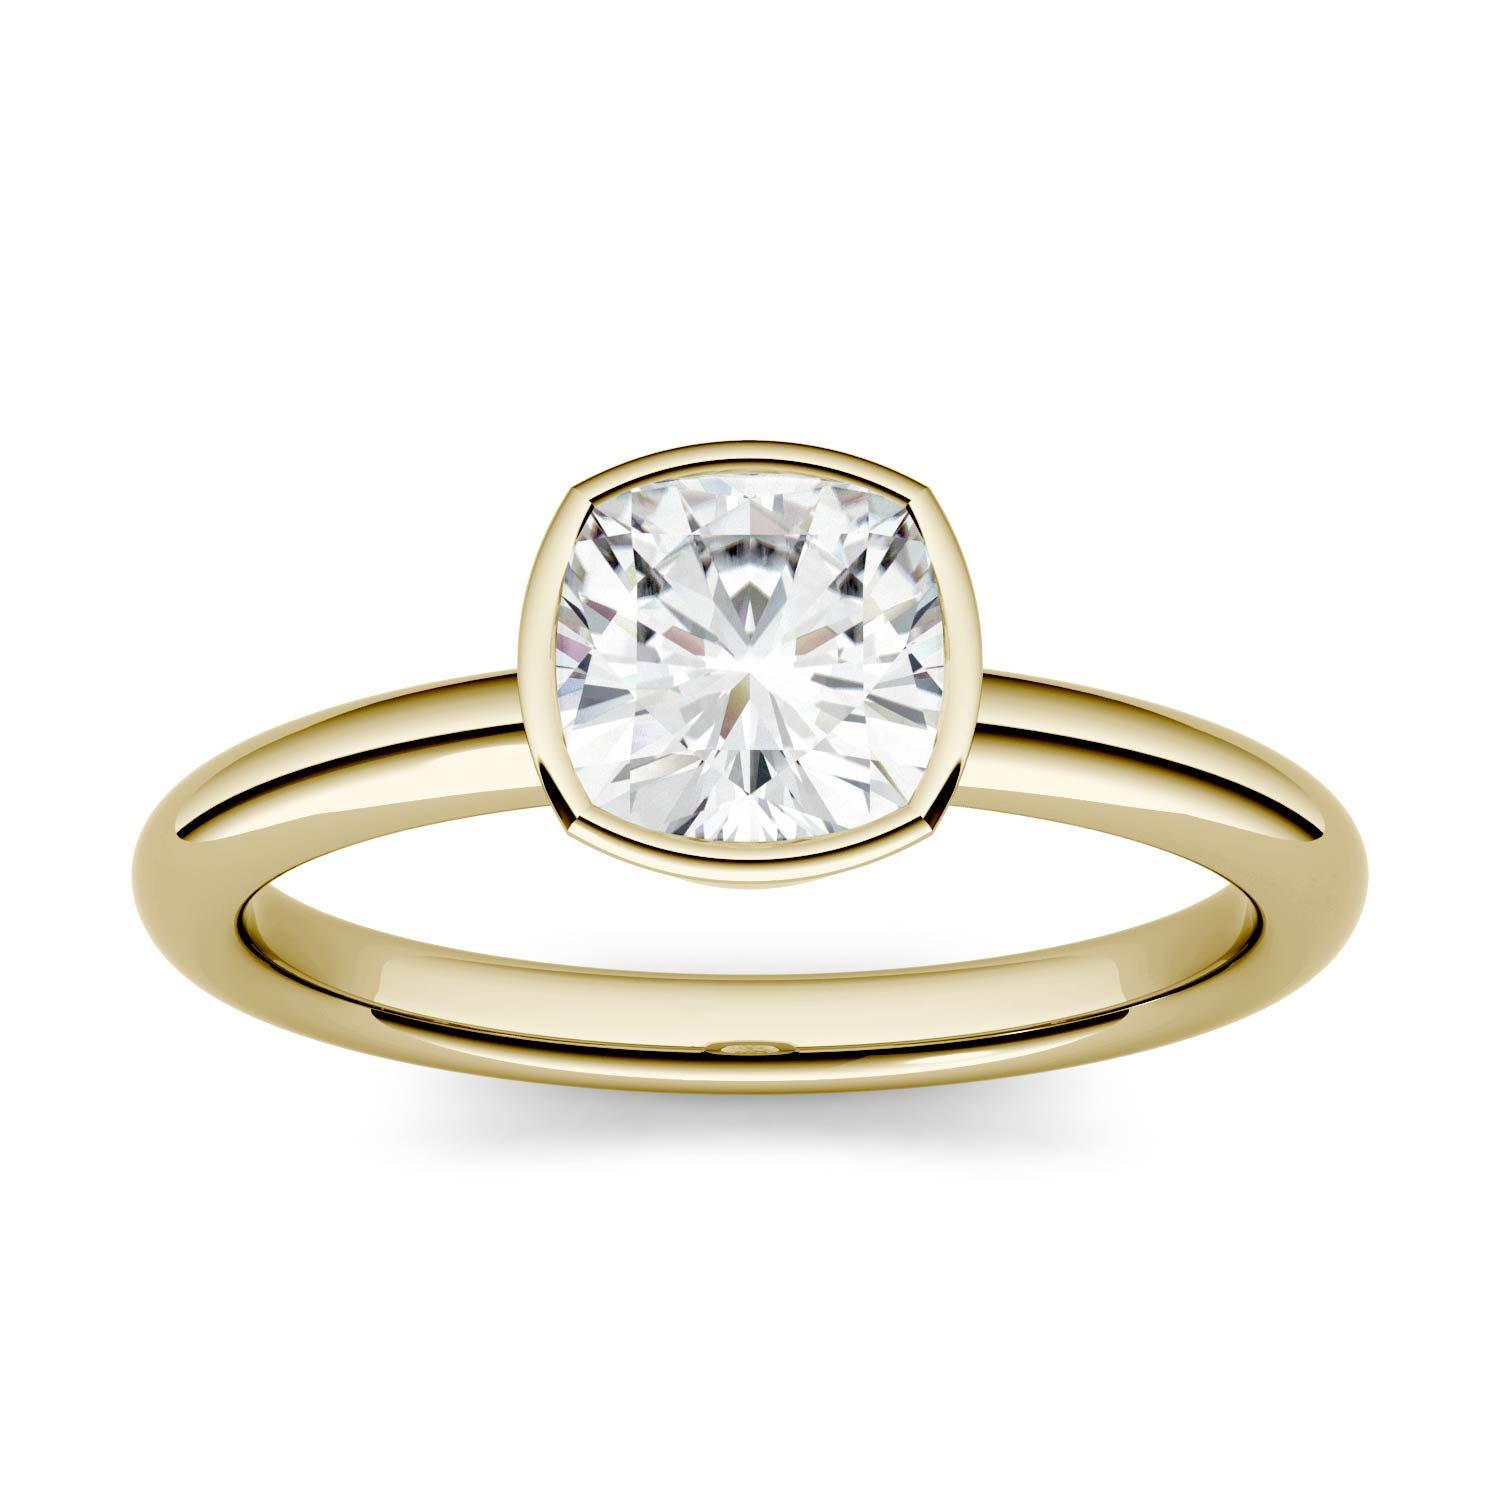 Cushion 0.96cttw DEW Moissanite Bezel Set Solitaire Engagement Ring in 14K Yellow Gold 500118